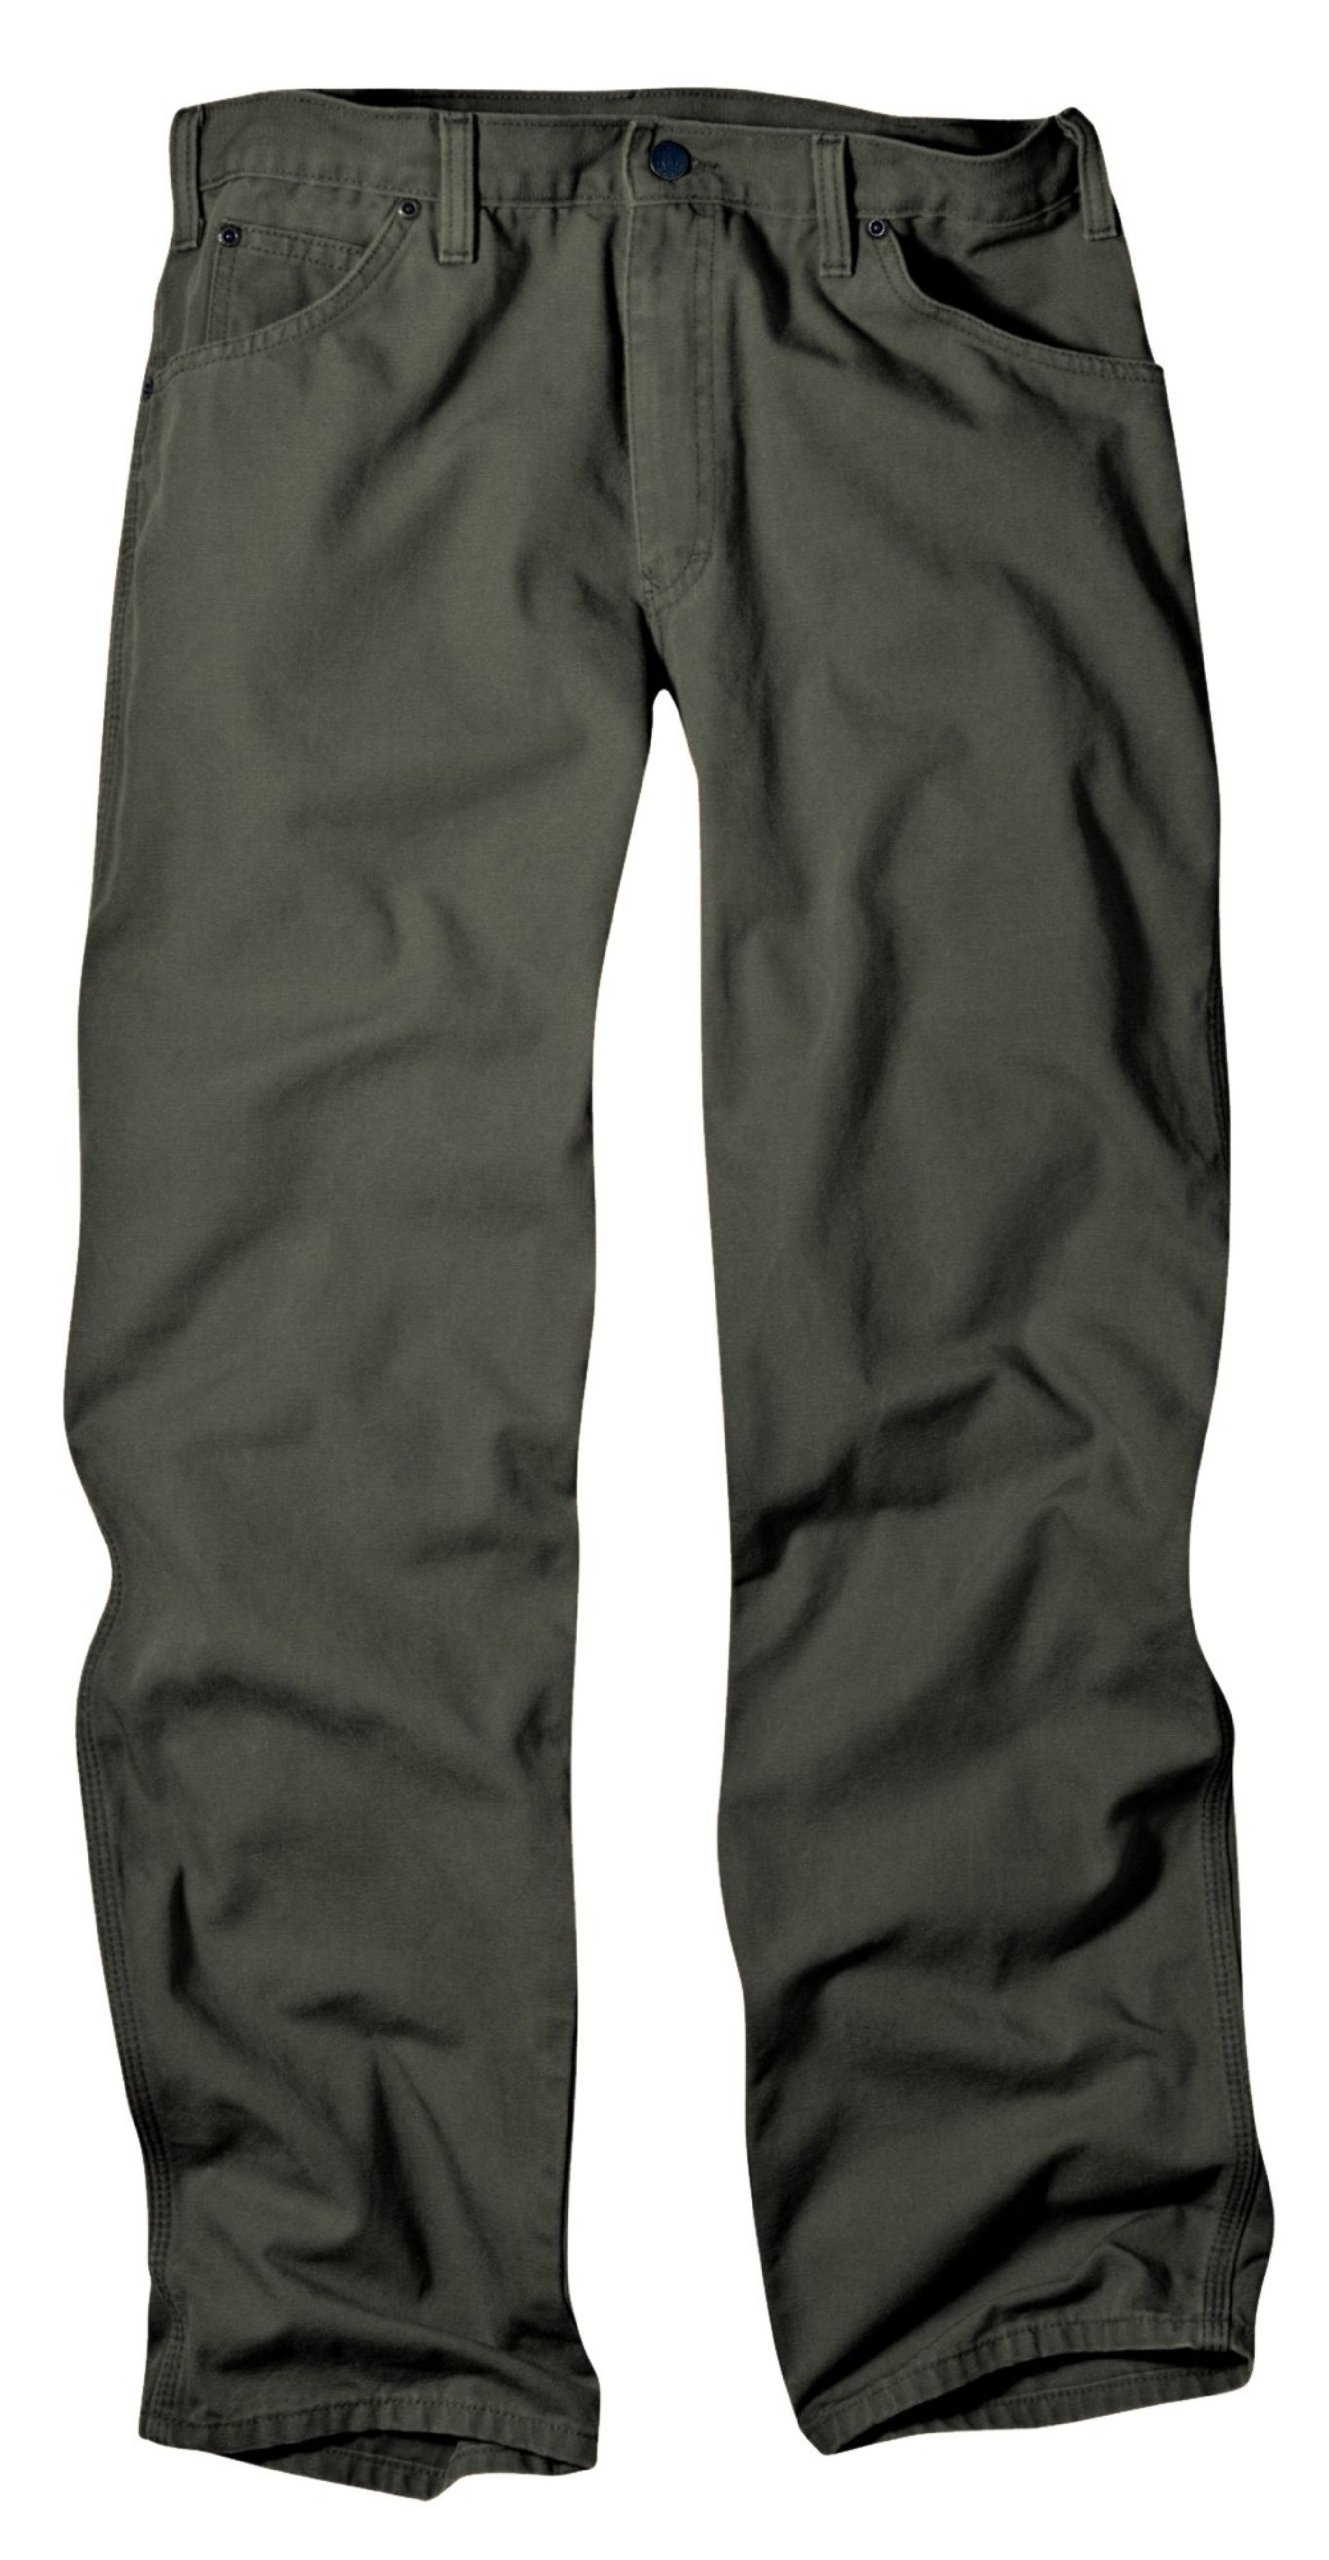 Dickies Men's Relaxed Fit Duck Jean, Moss, 38x30